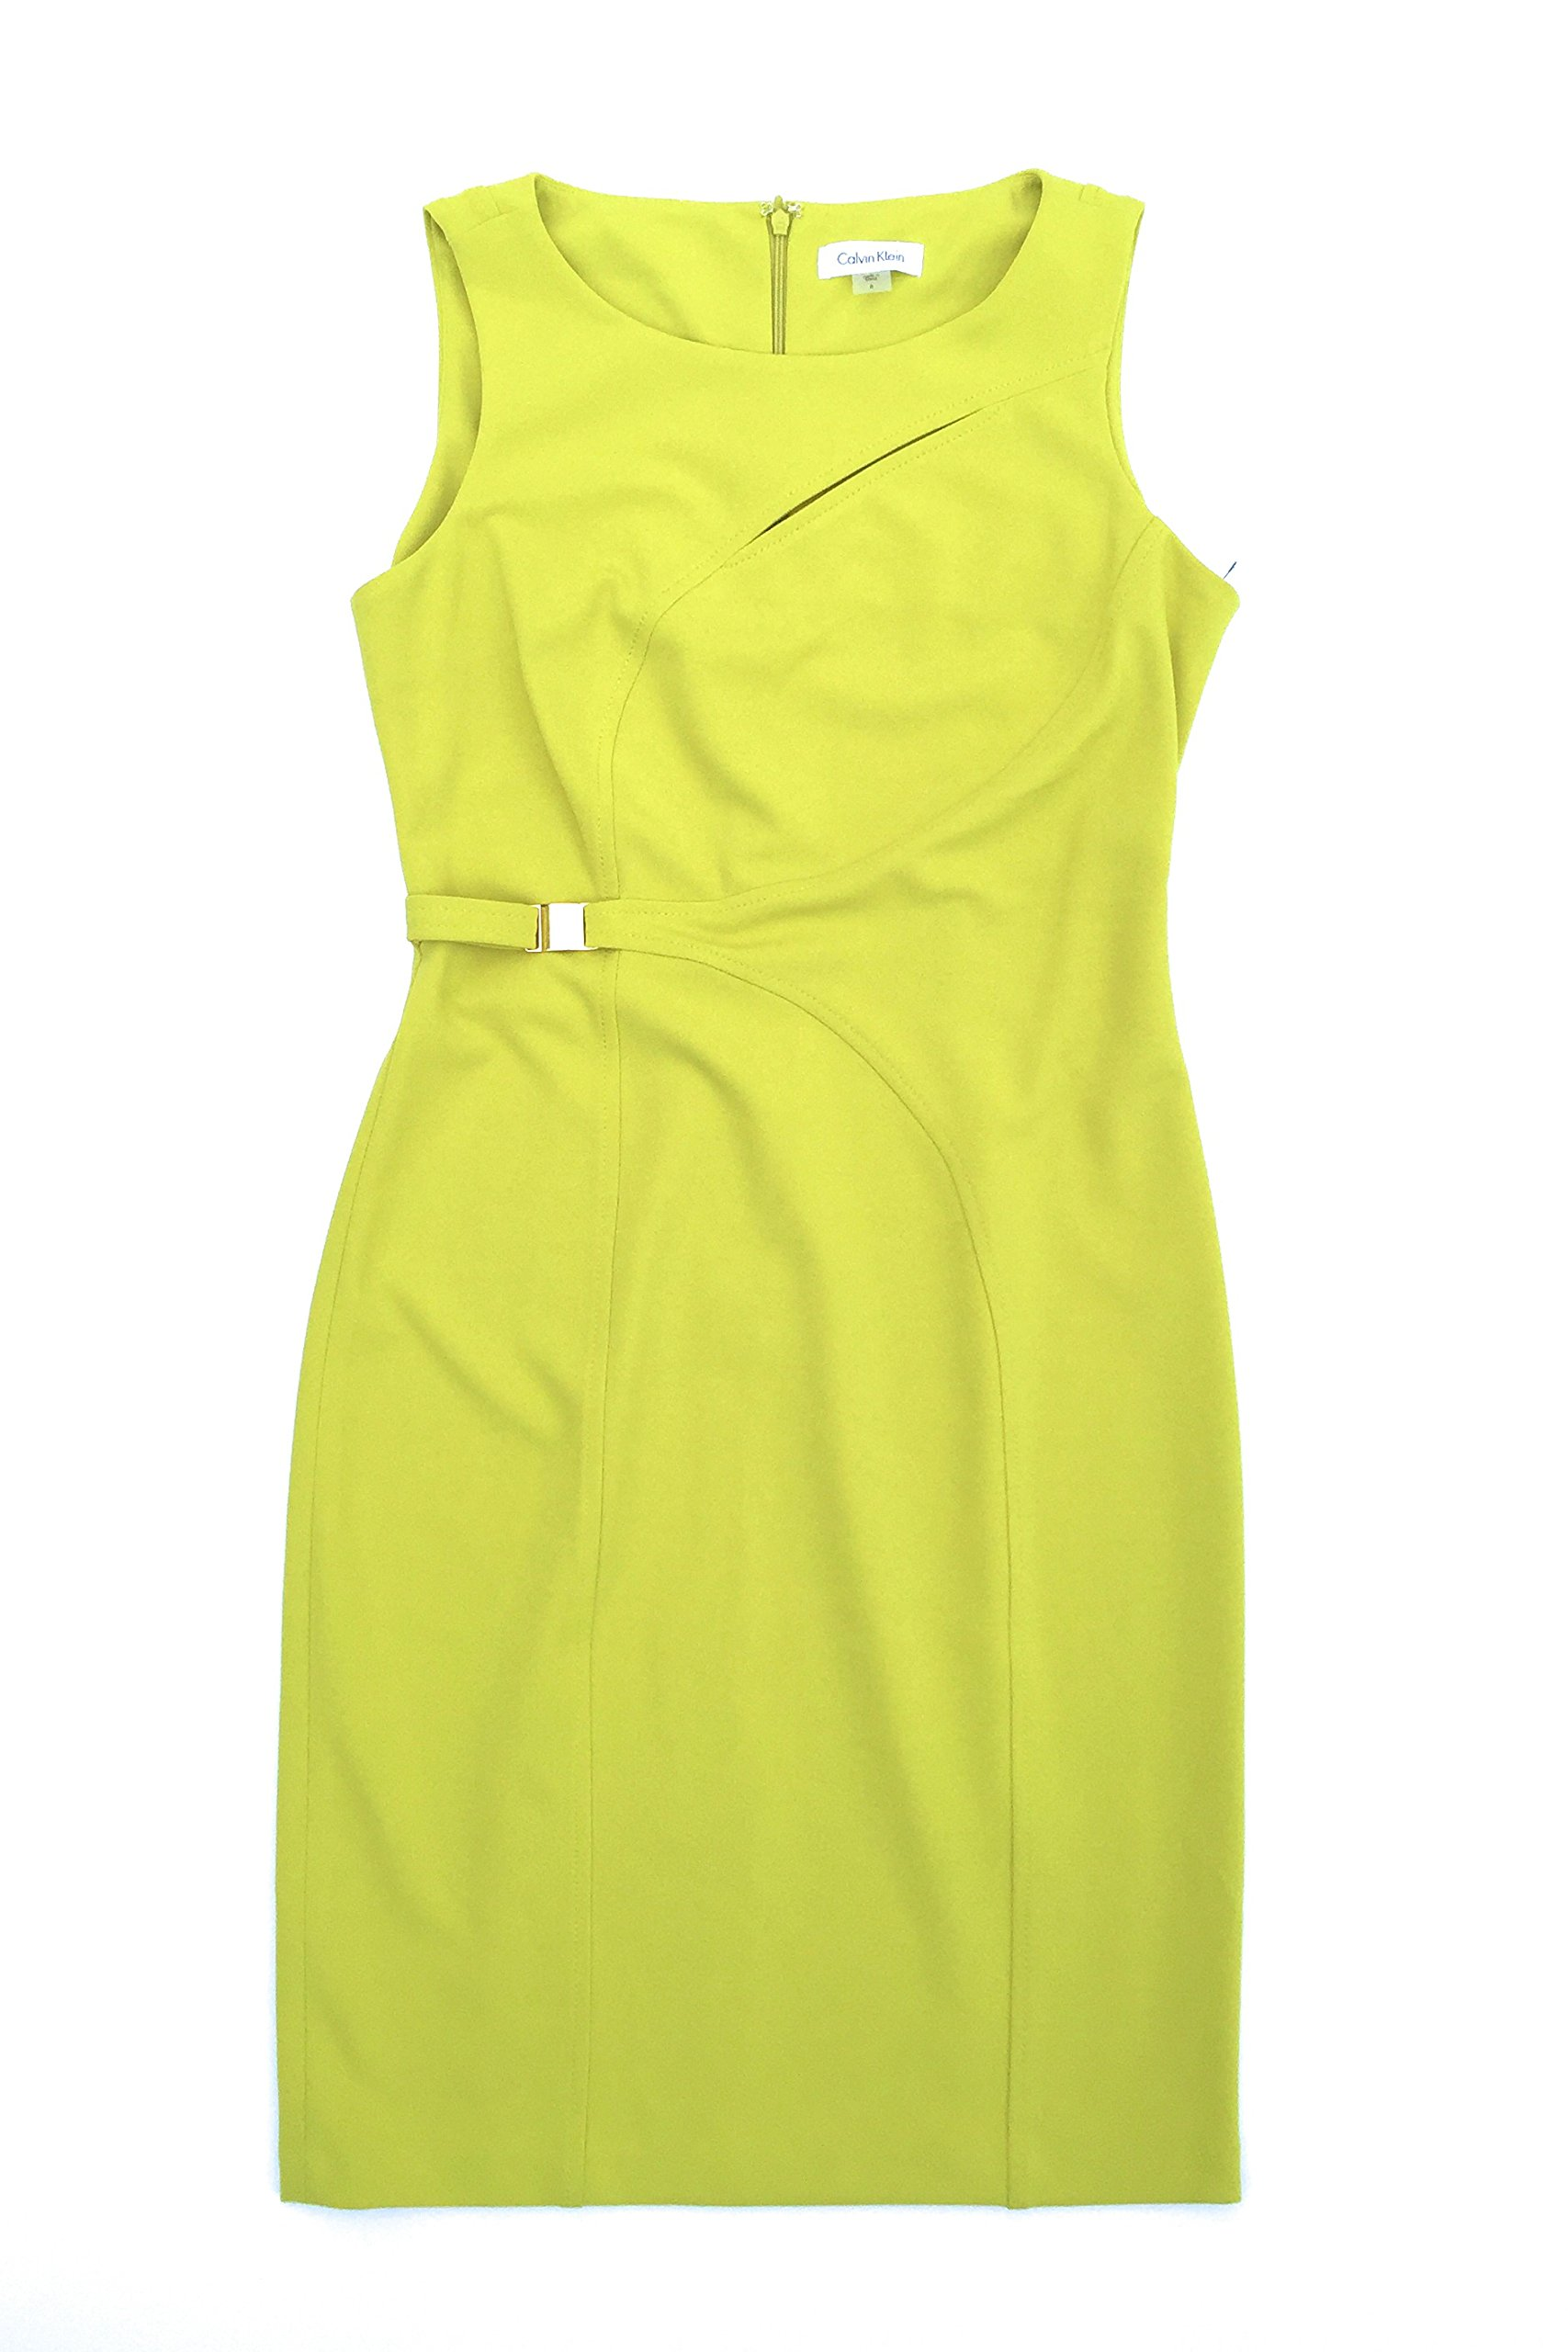 Available at Amazon: Calvin Klein Women's Sleeveless Sheath Dress Size 6 Green